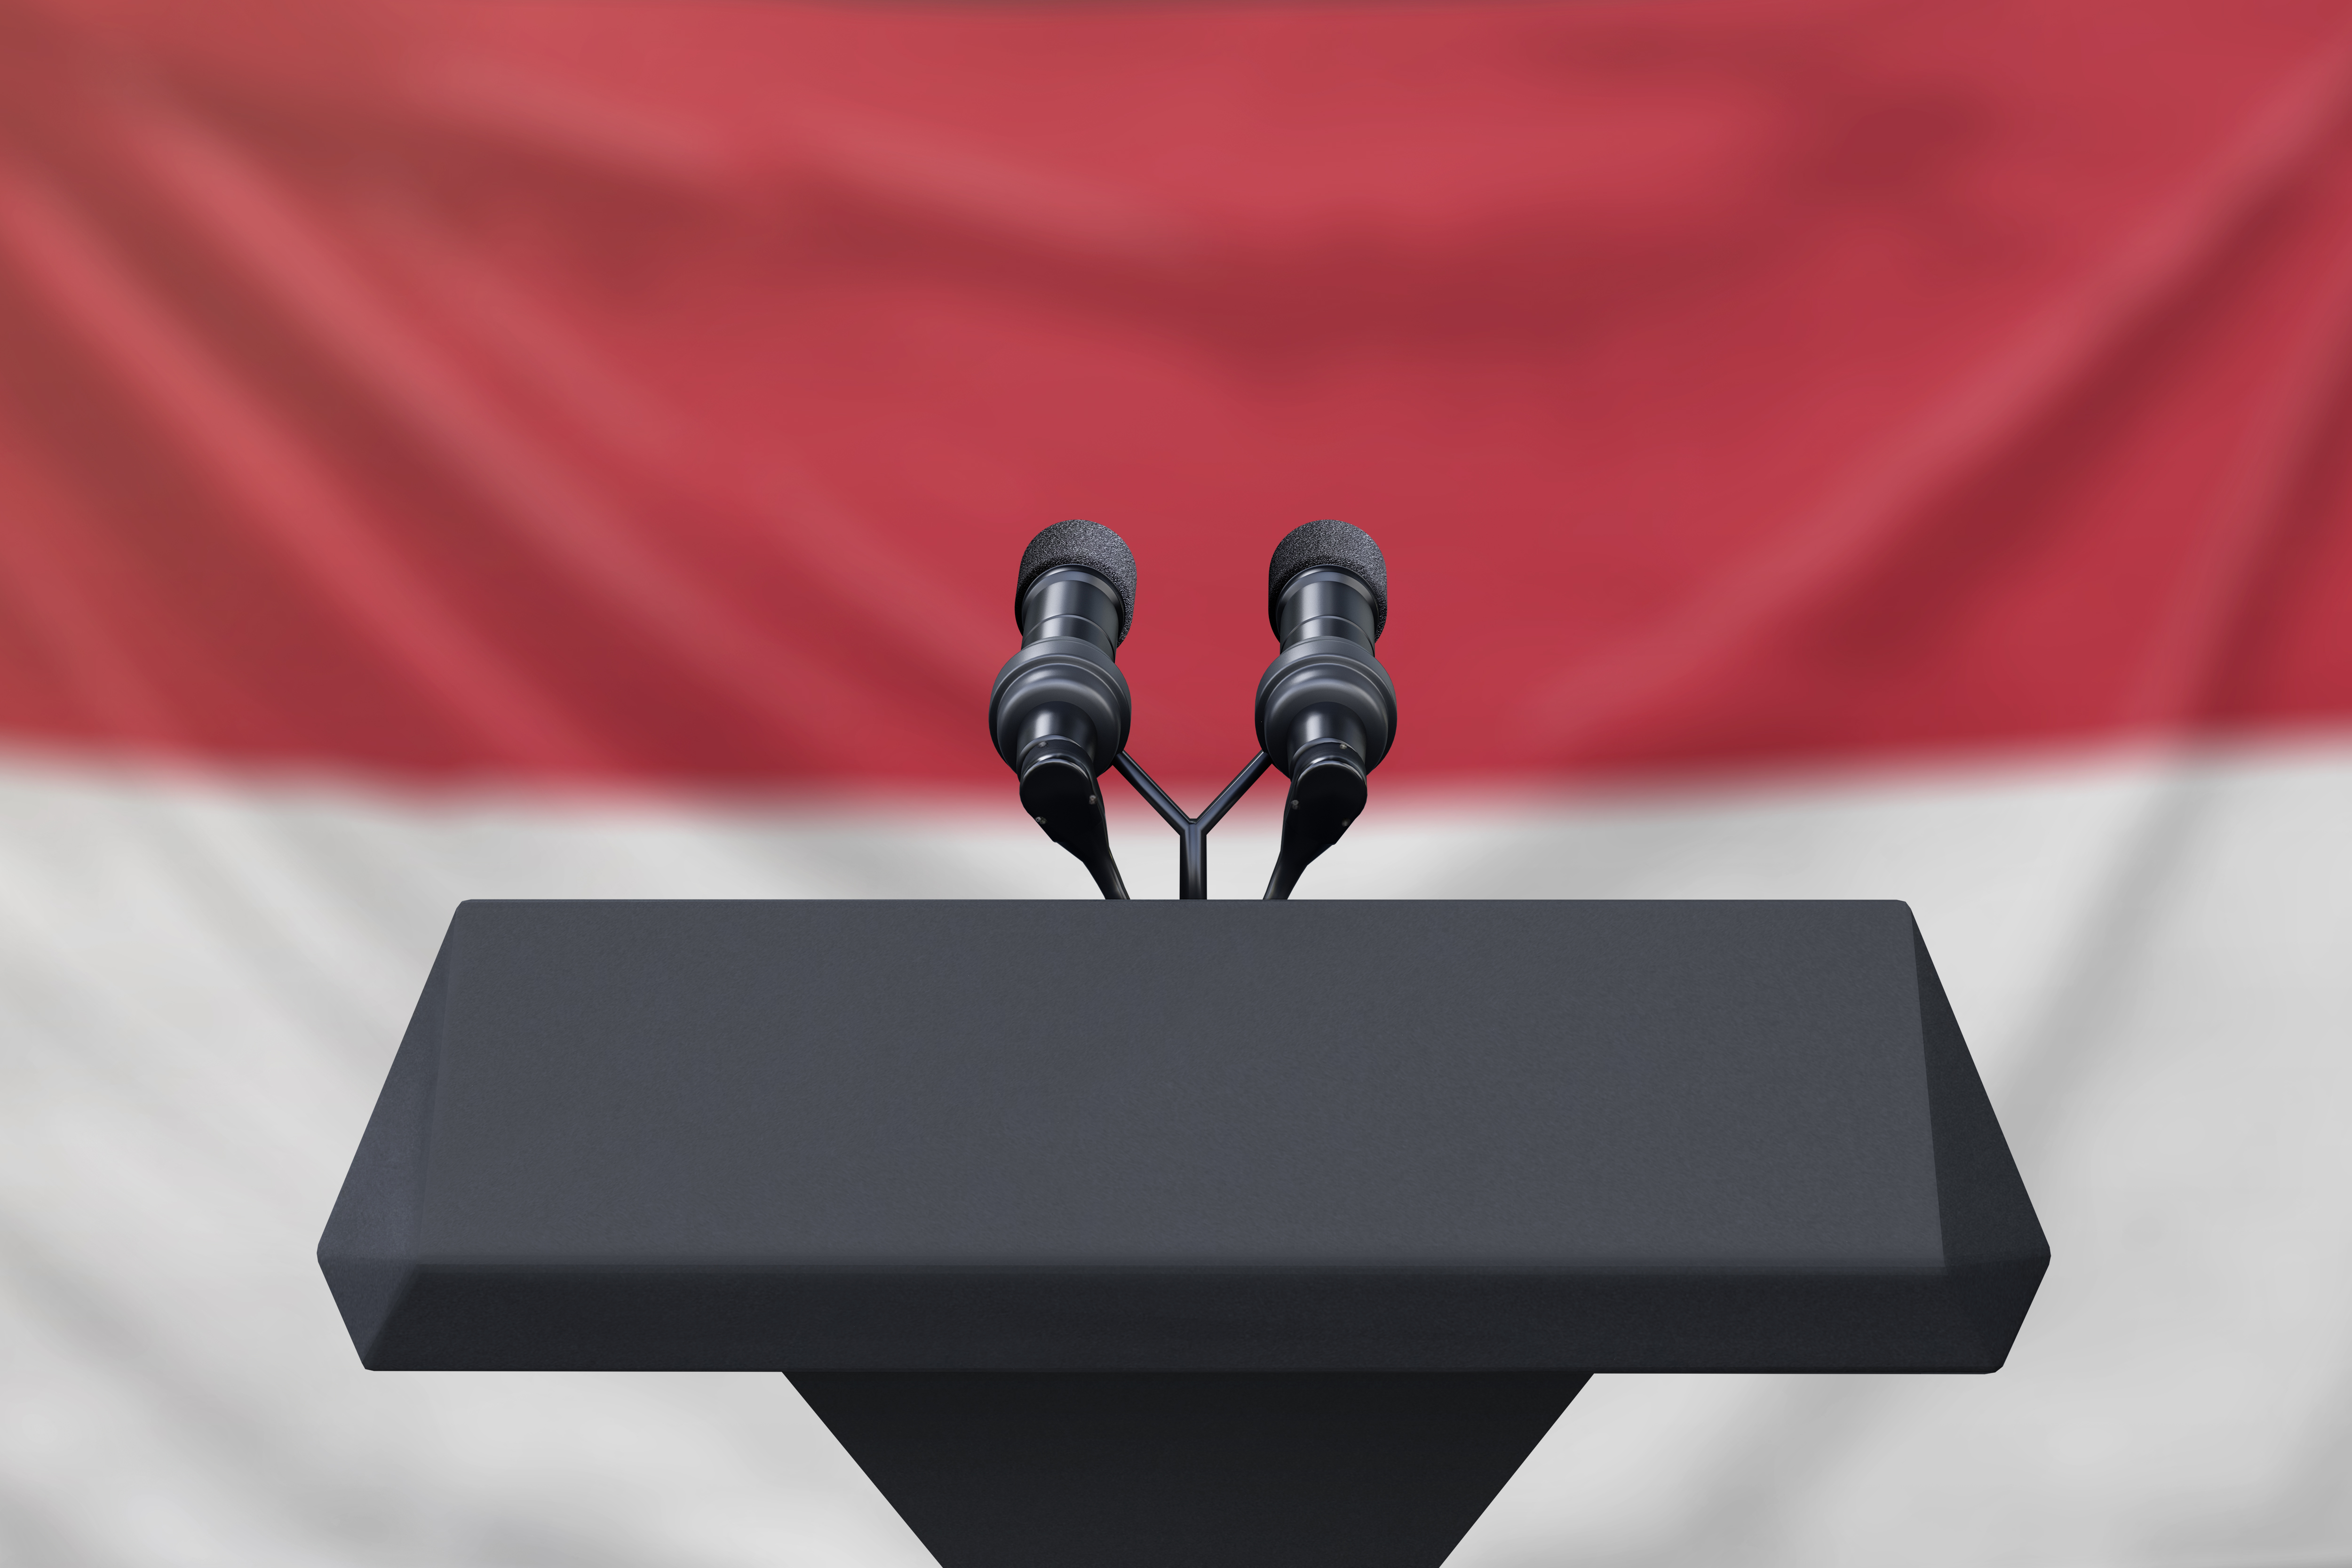 A podium with microphone standing in front of Indonesia's flag